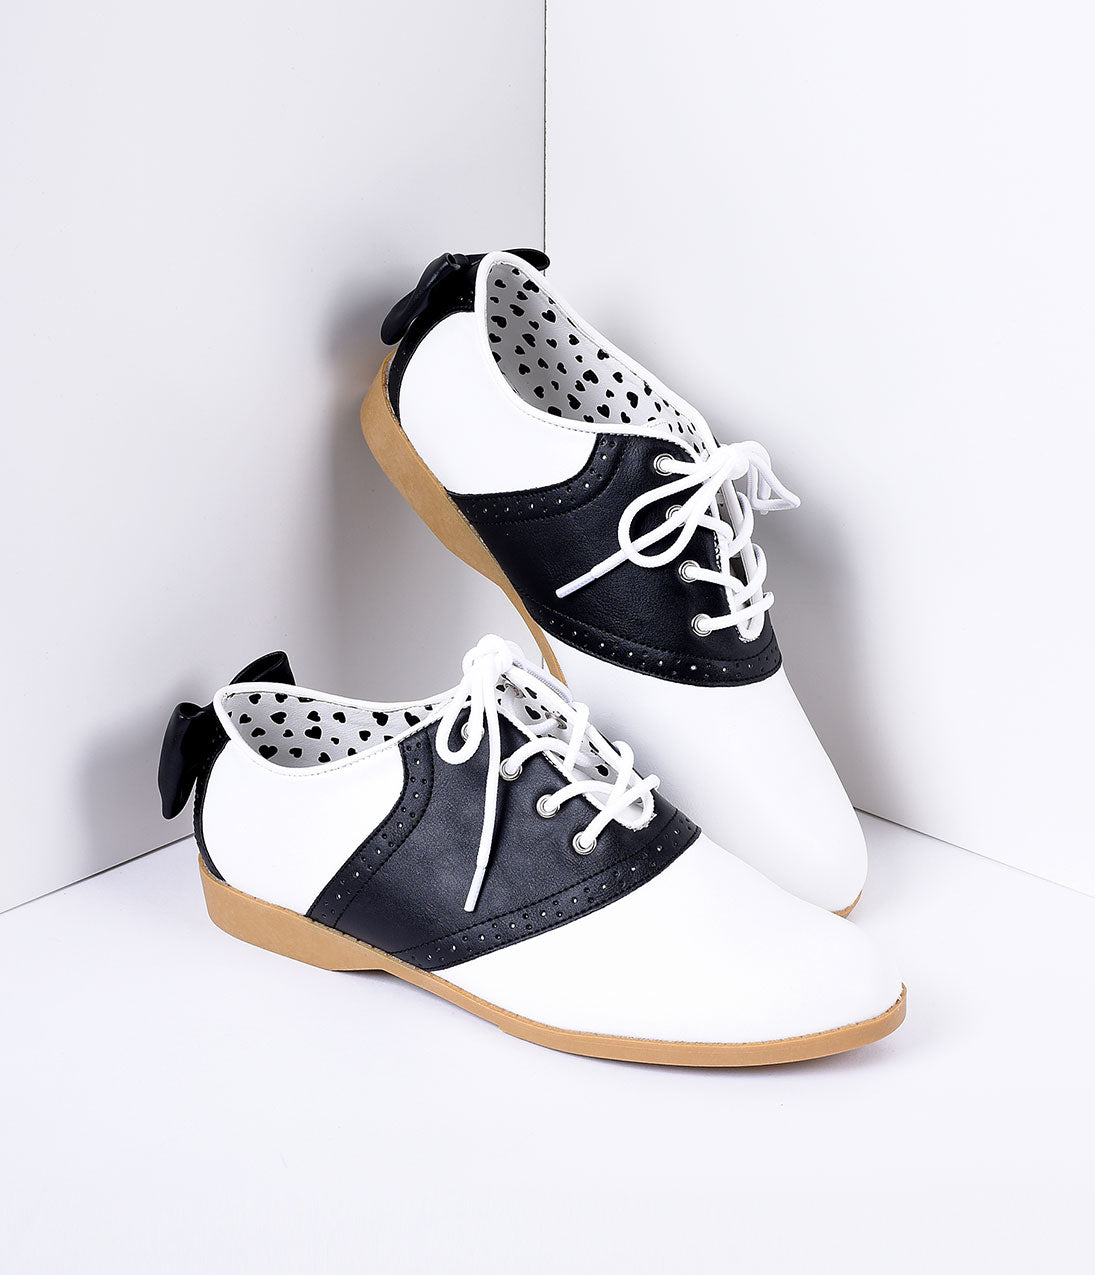 Retro Vintage Flats and Low Heel Shoes Black  White Classic Lace Up Bow Saddle Shoes $48.00 AT vintagedancer.com